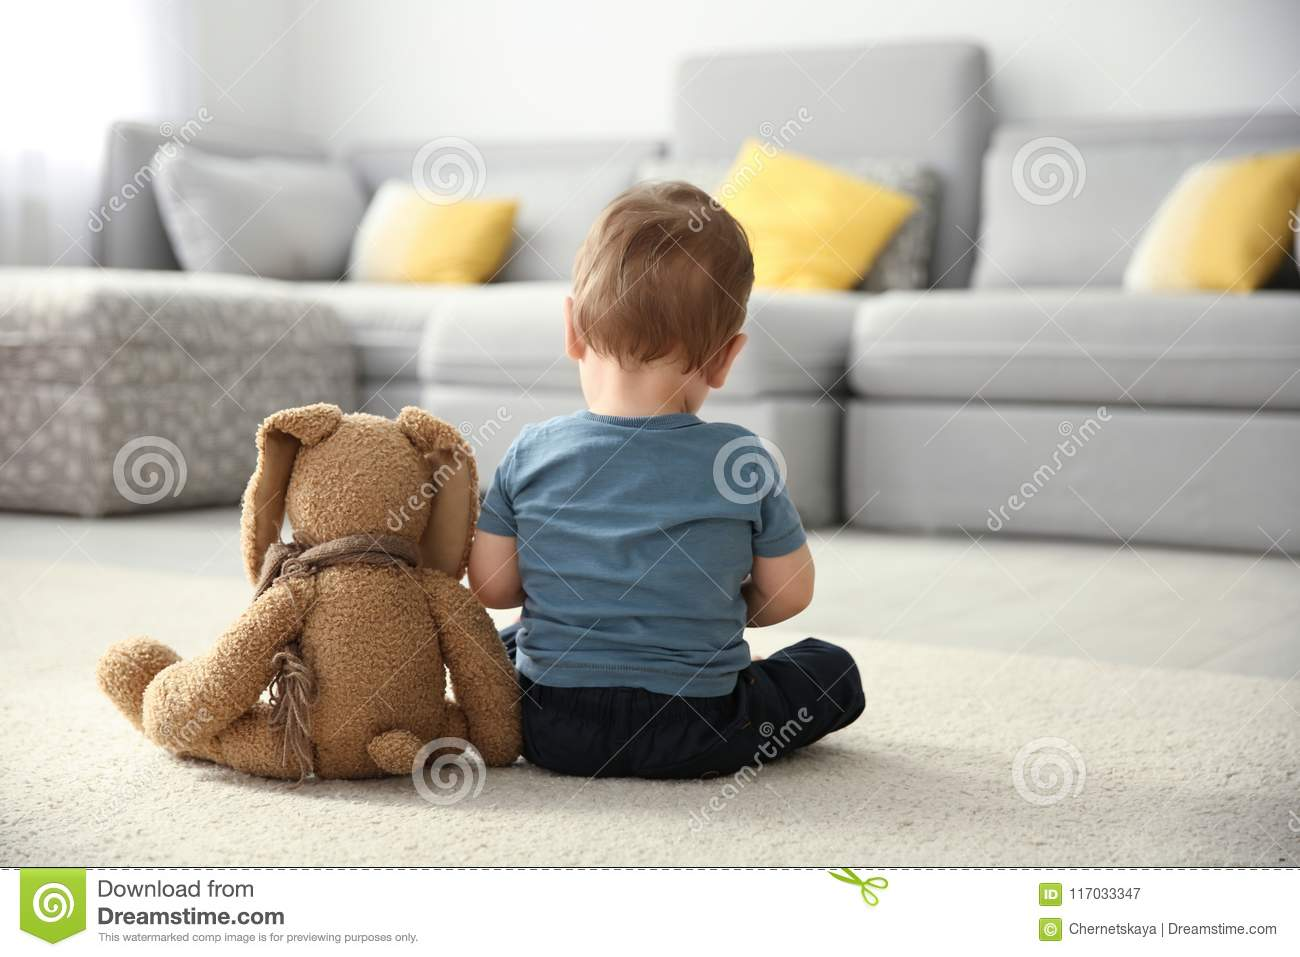 Little boy with toy sitting on floor in living room.